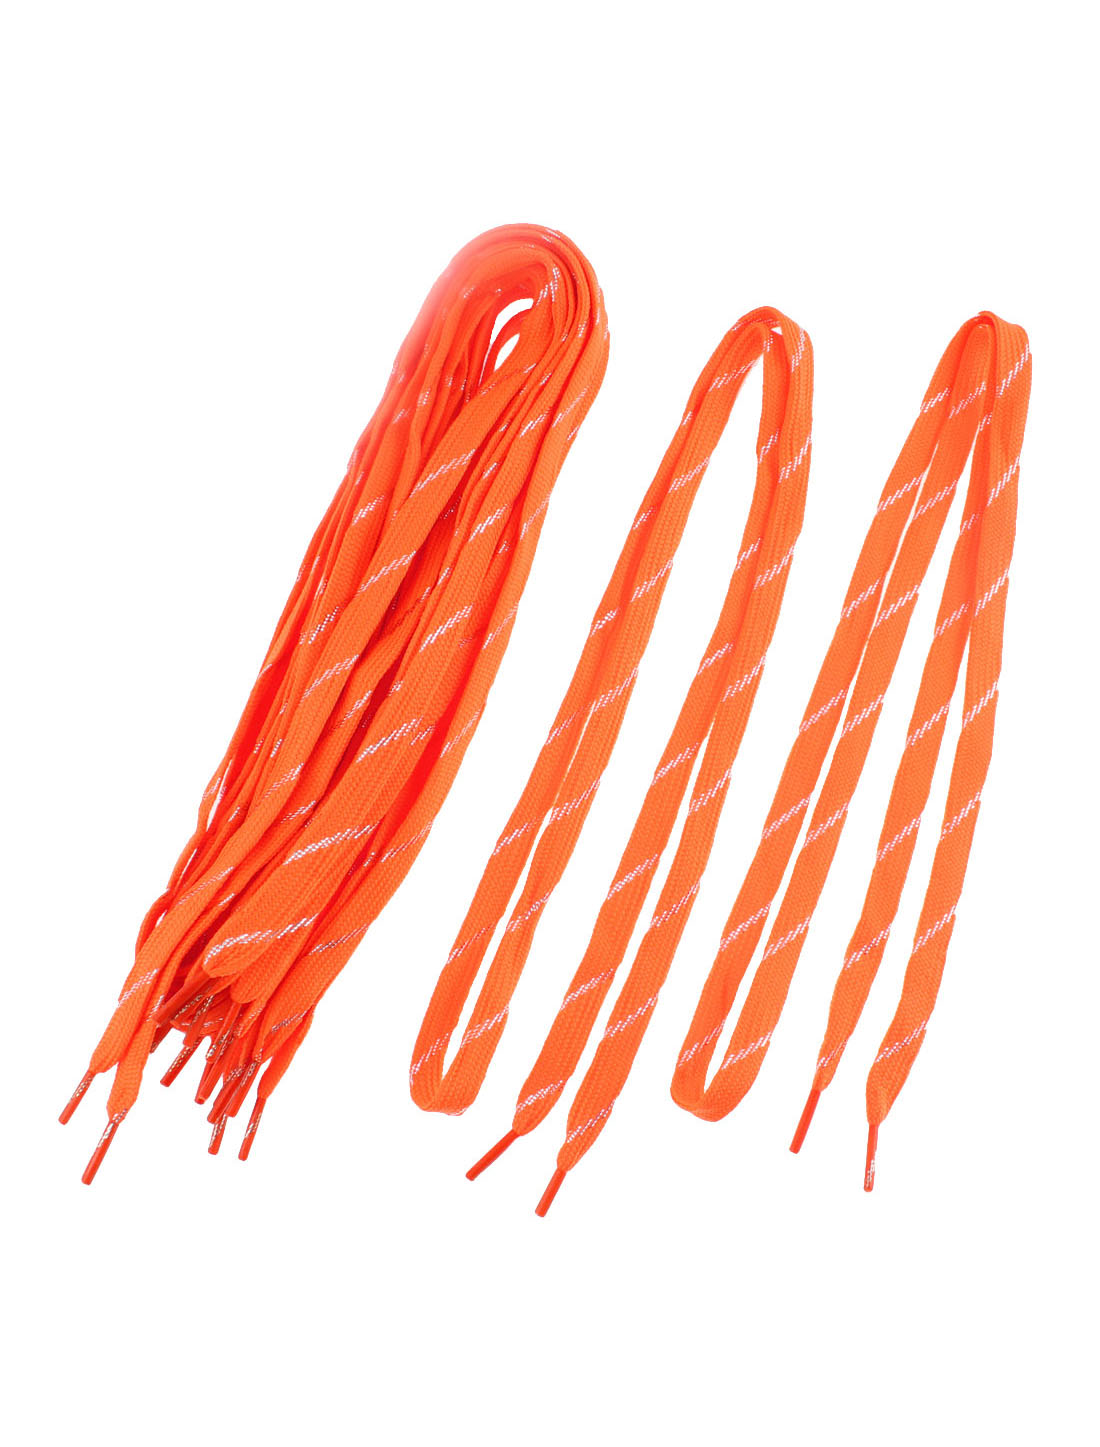 Sneakers Glittery Stripe Pattern Dual Layer Shoestring Shoelaces Orangered 5 Pairs